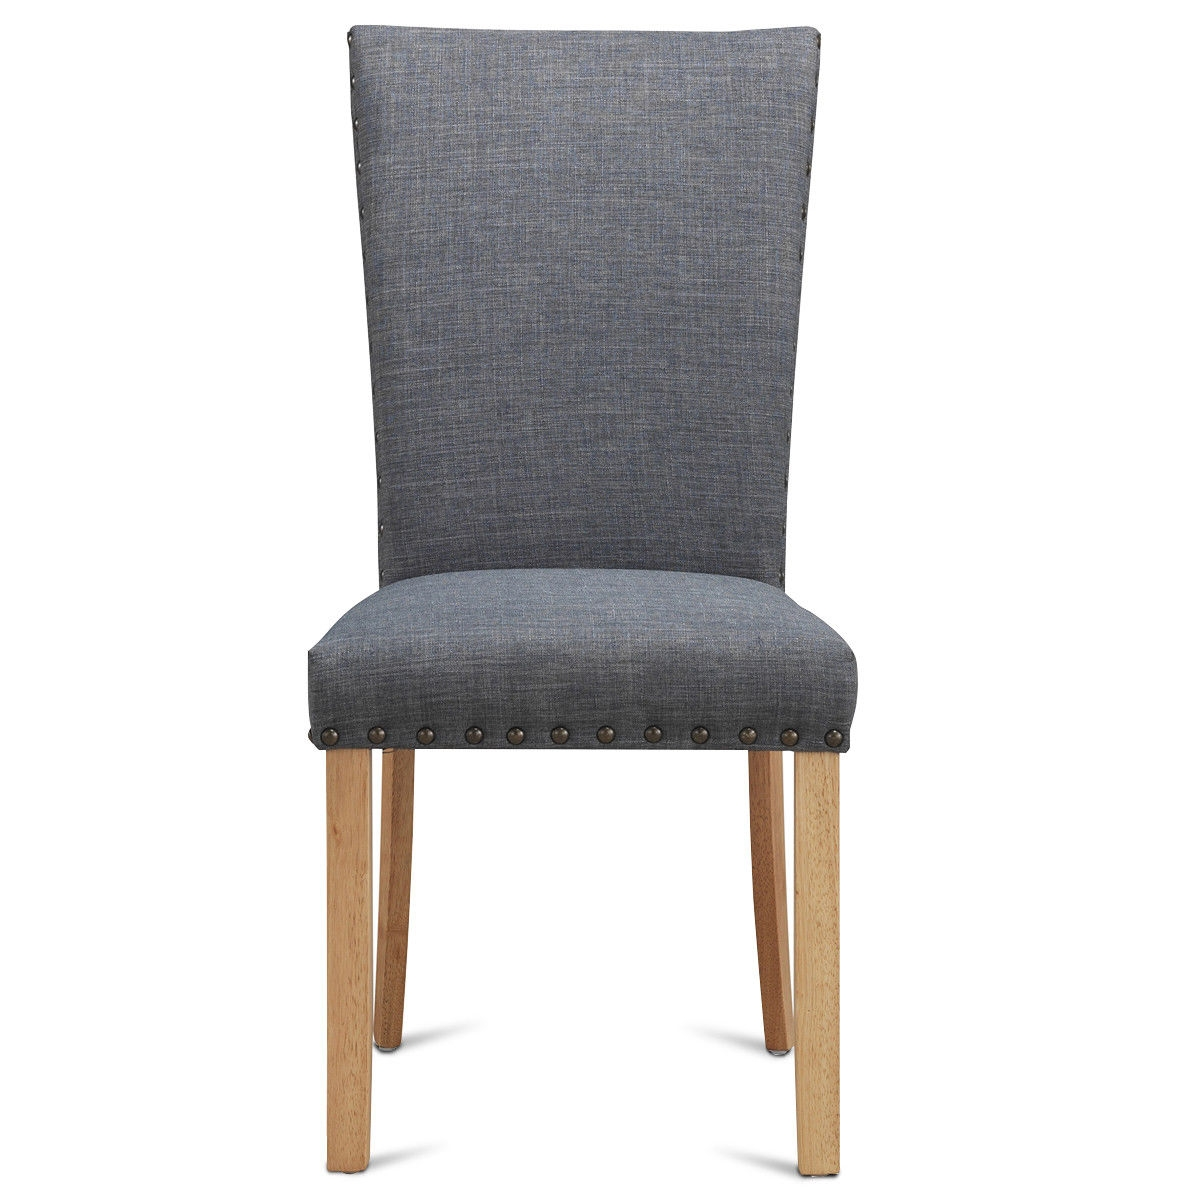 Set of 2 Armless Fabric Upholstered Nailhead Dining Chairs-Gray